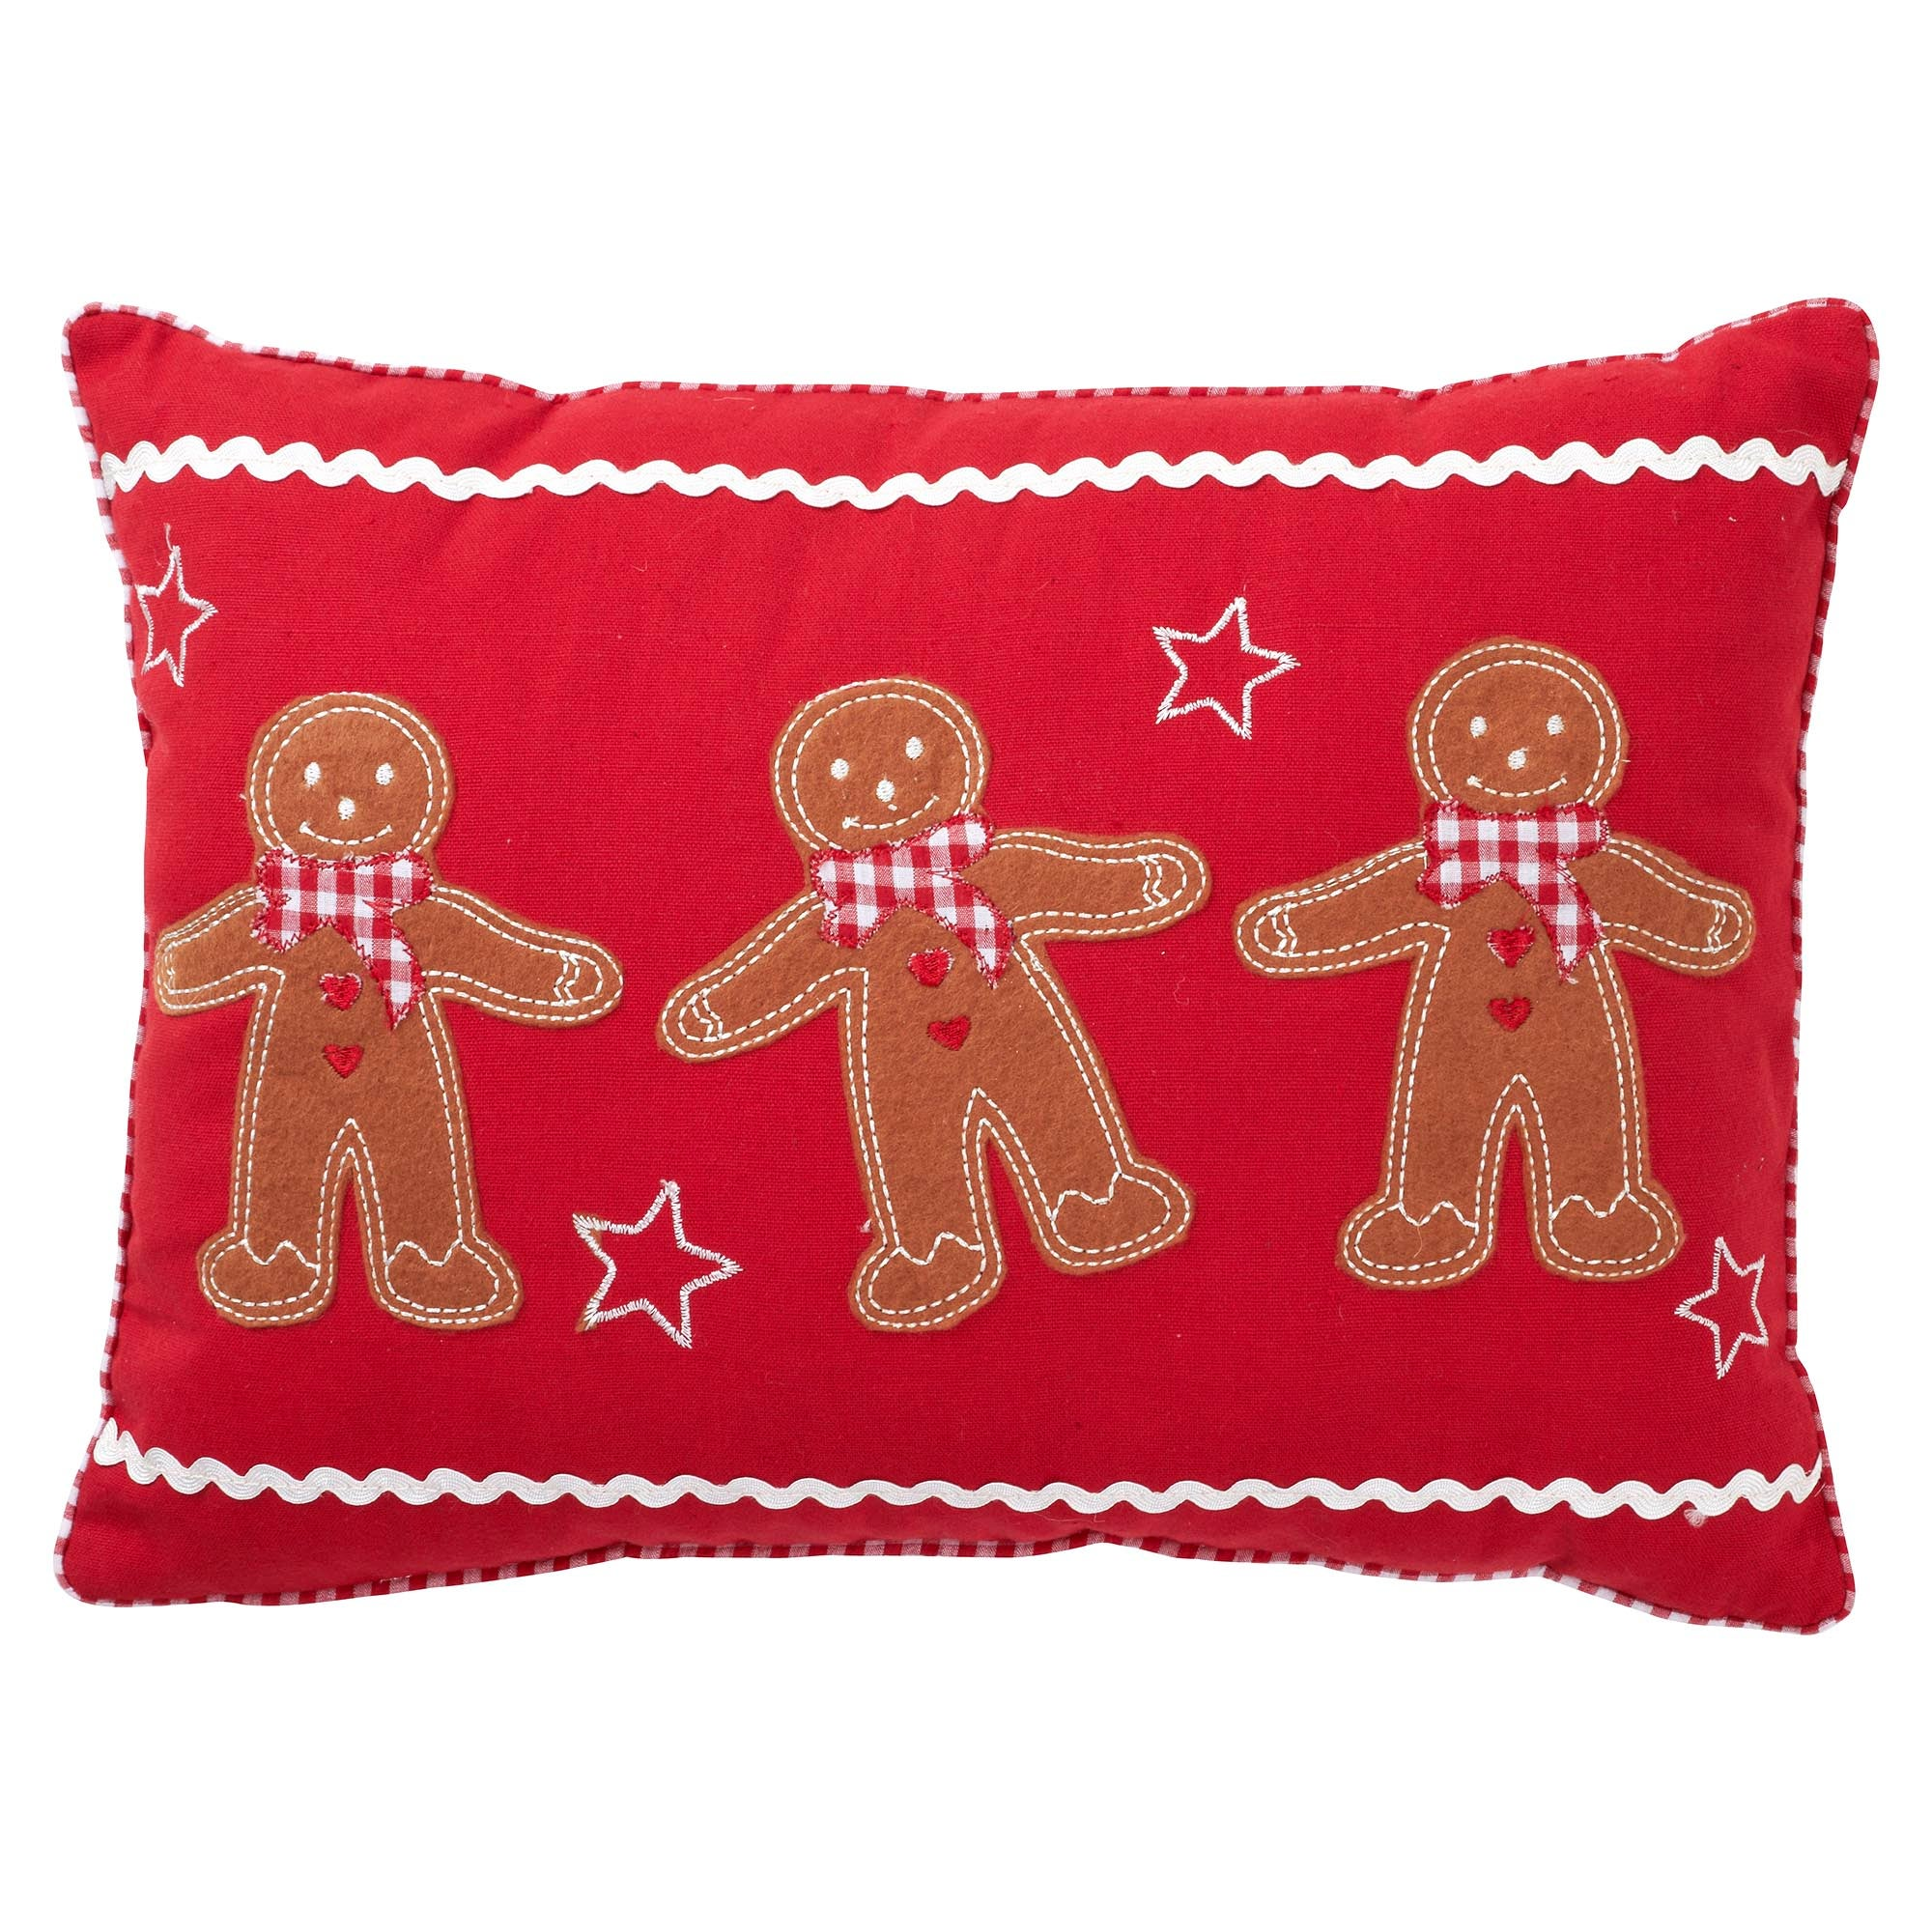 Red Gingerbread Man Cushion